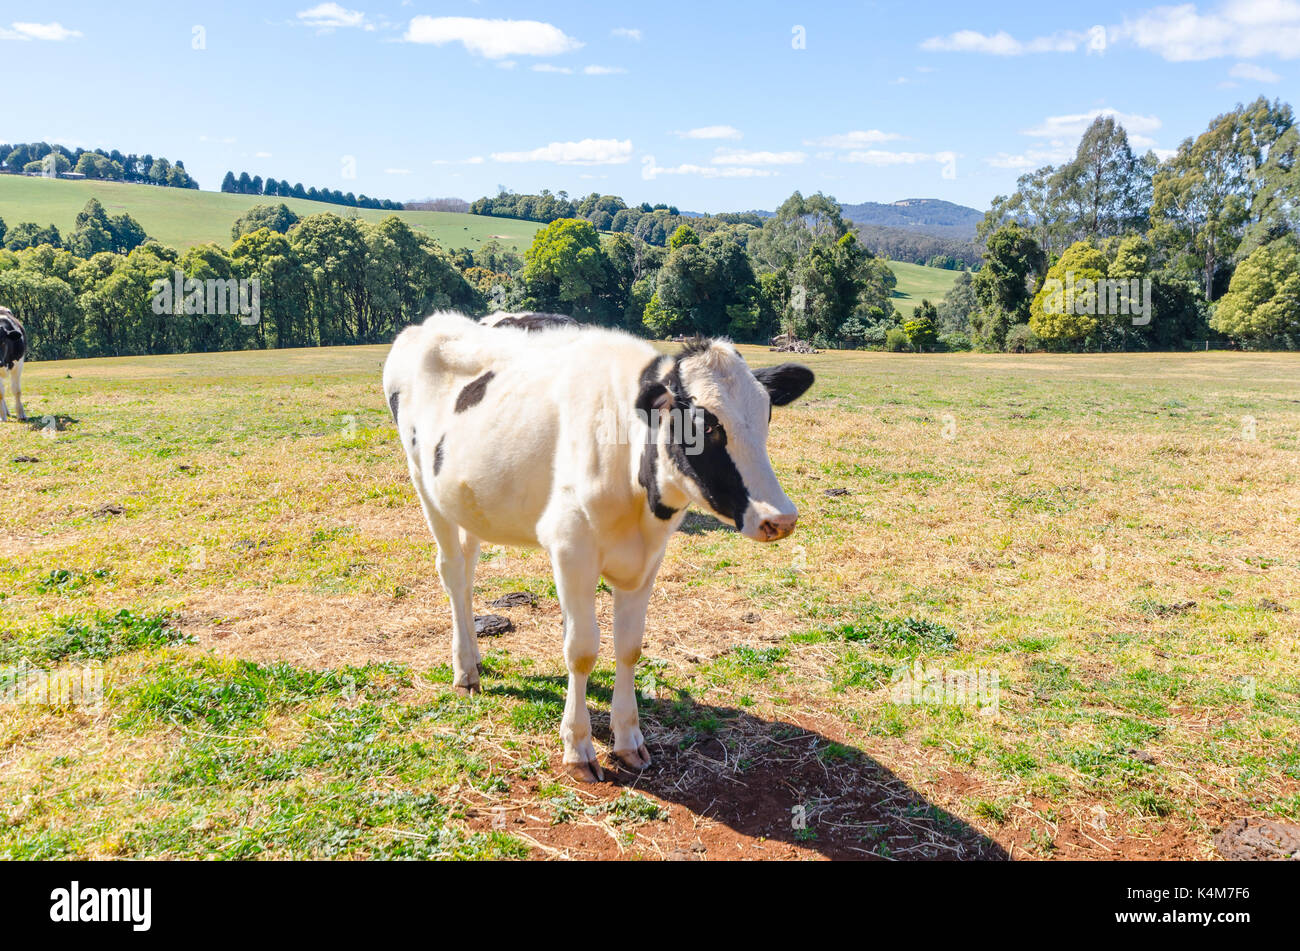 Cattle on rural property in Wildes Meadow New South Wales Australia - Stock Image